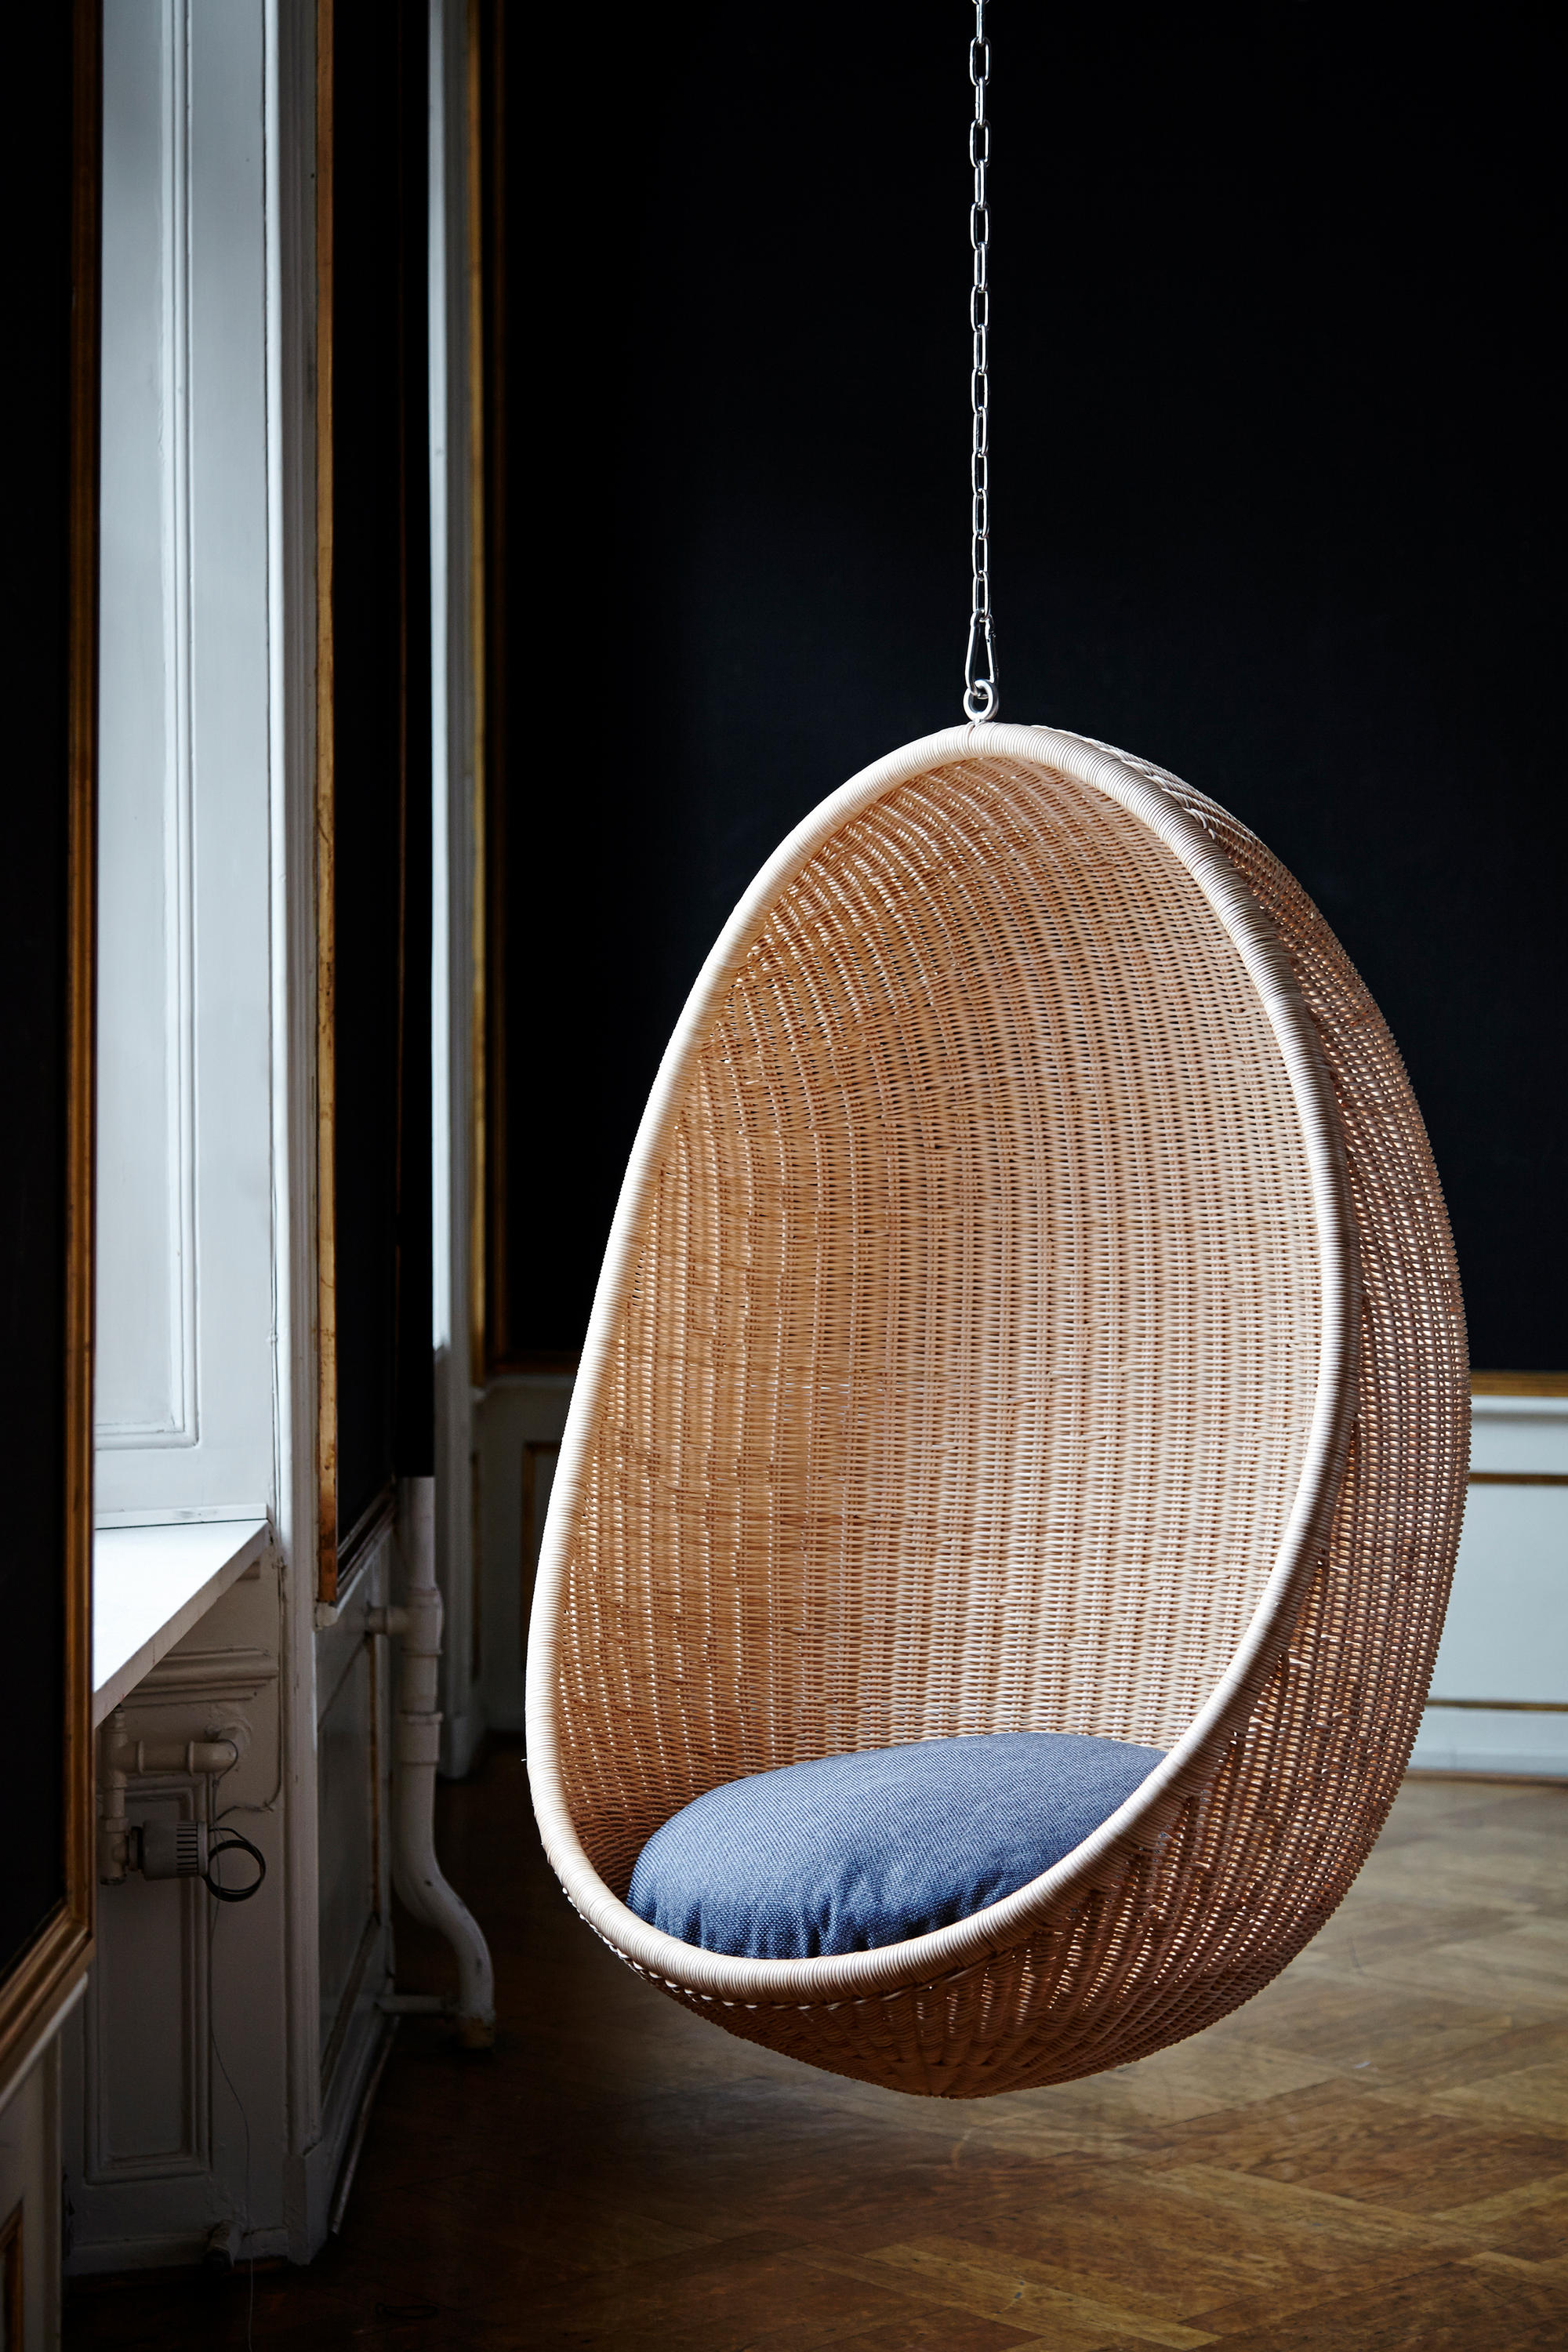 Hanging Egg Cocoon Furniture From Sika Design Architonic